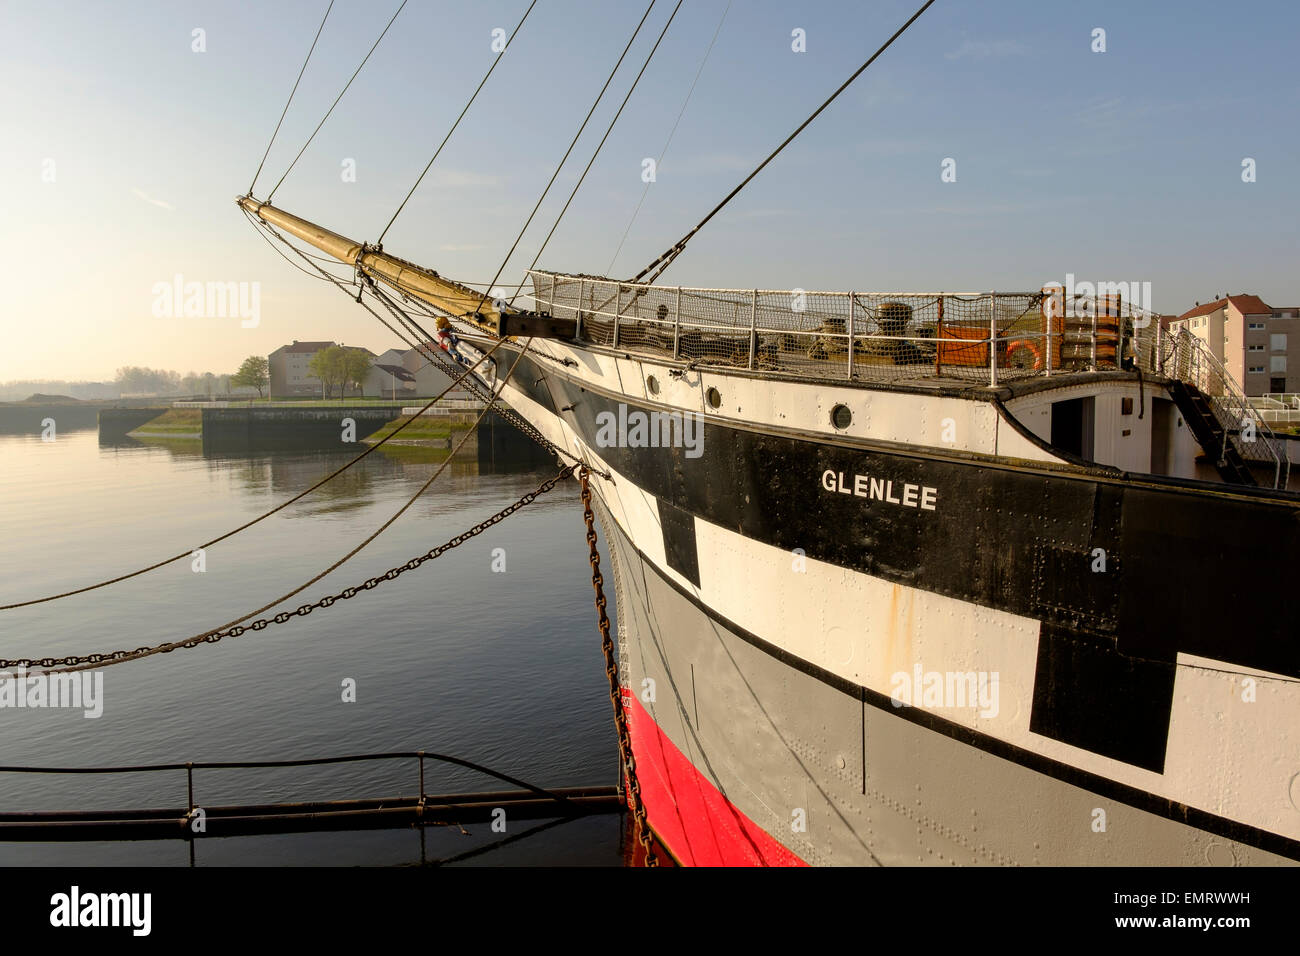 The Glenlee clipper ship situated on the River Clyde in Glasgow, Scotland, UK - Stock Image